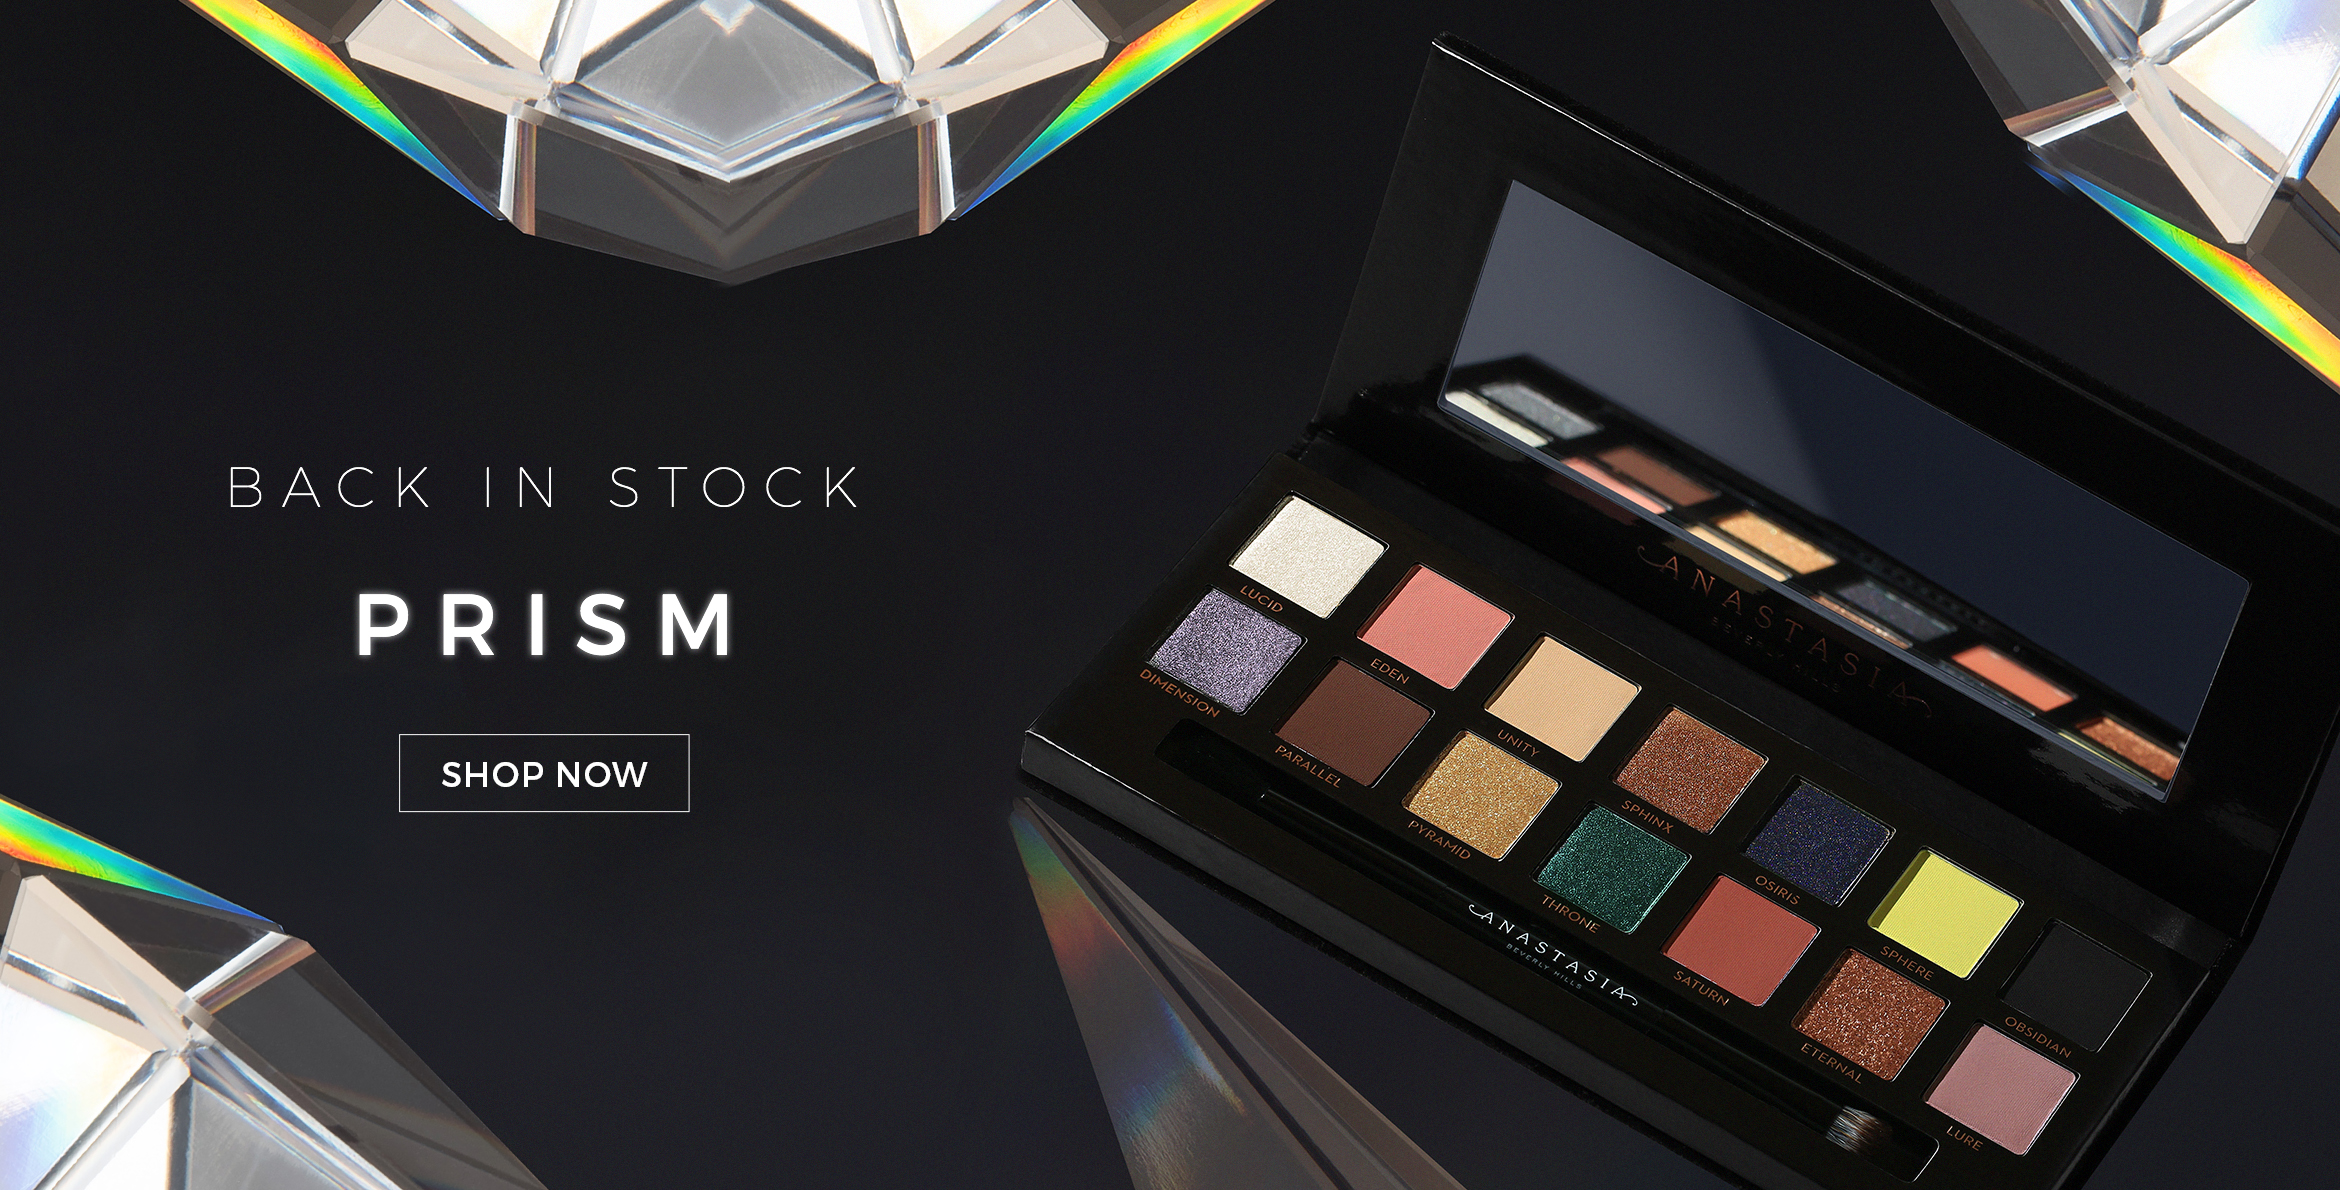 Prism Back in Stock